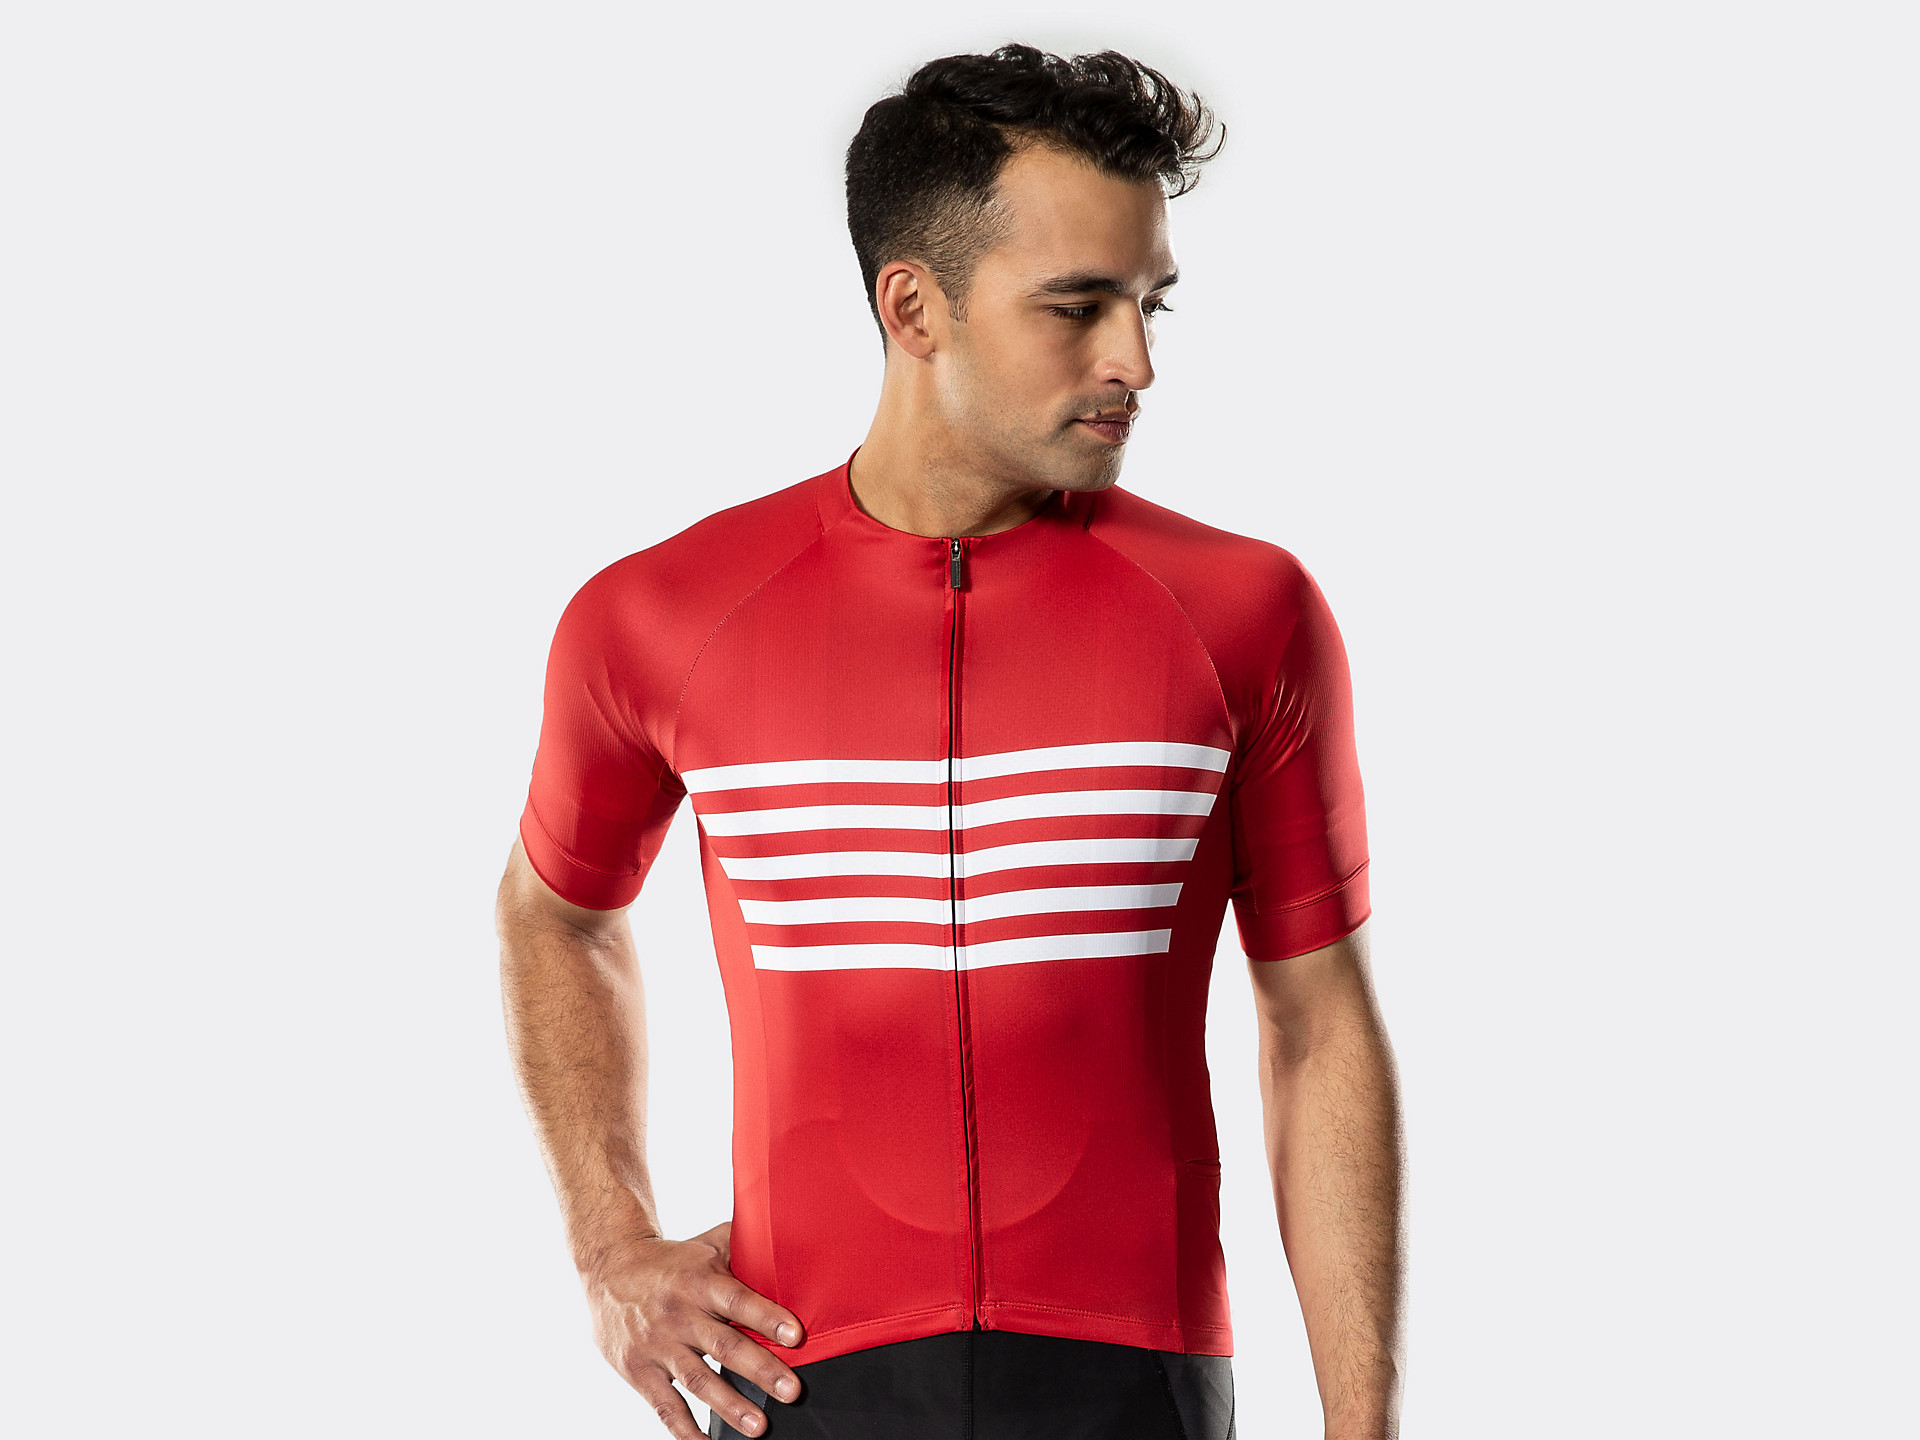 b0e9f59b262 Bontrager Circuit LTD Cycling Jersey